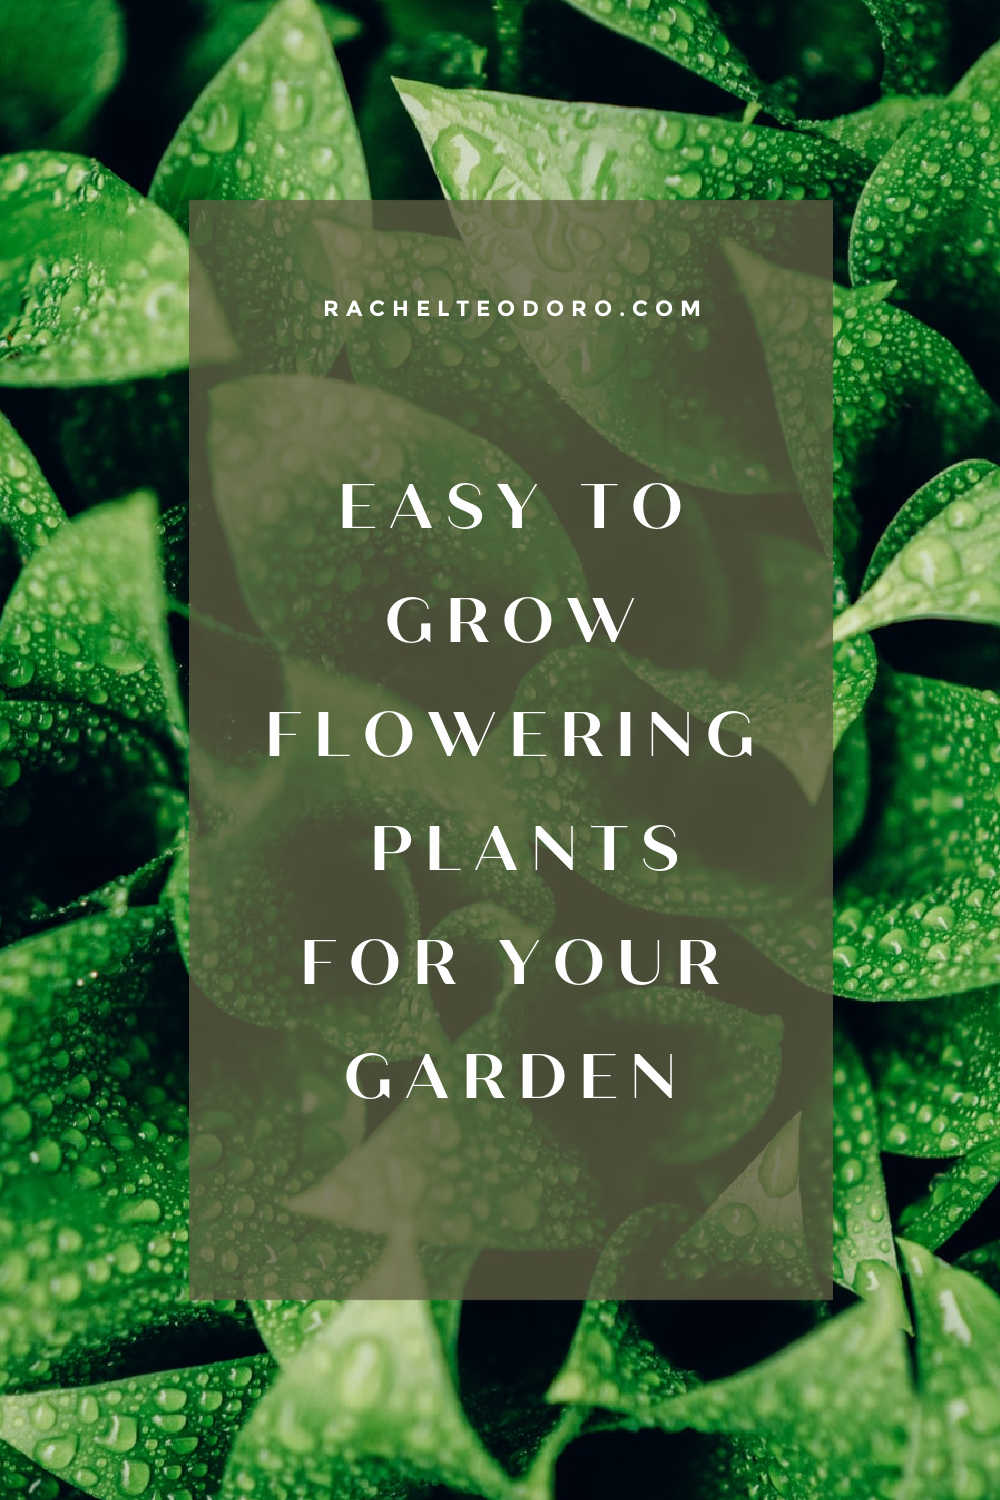 FLOWER PLANTS EASY TO GROW